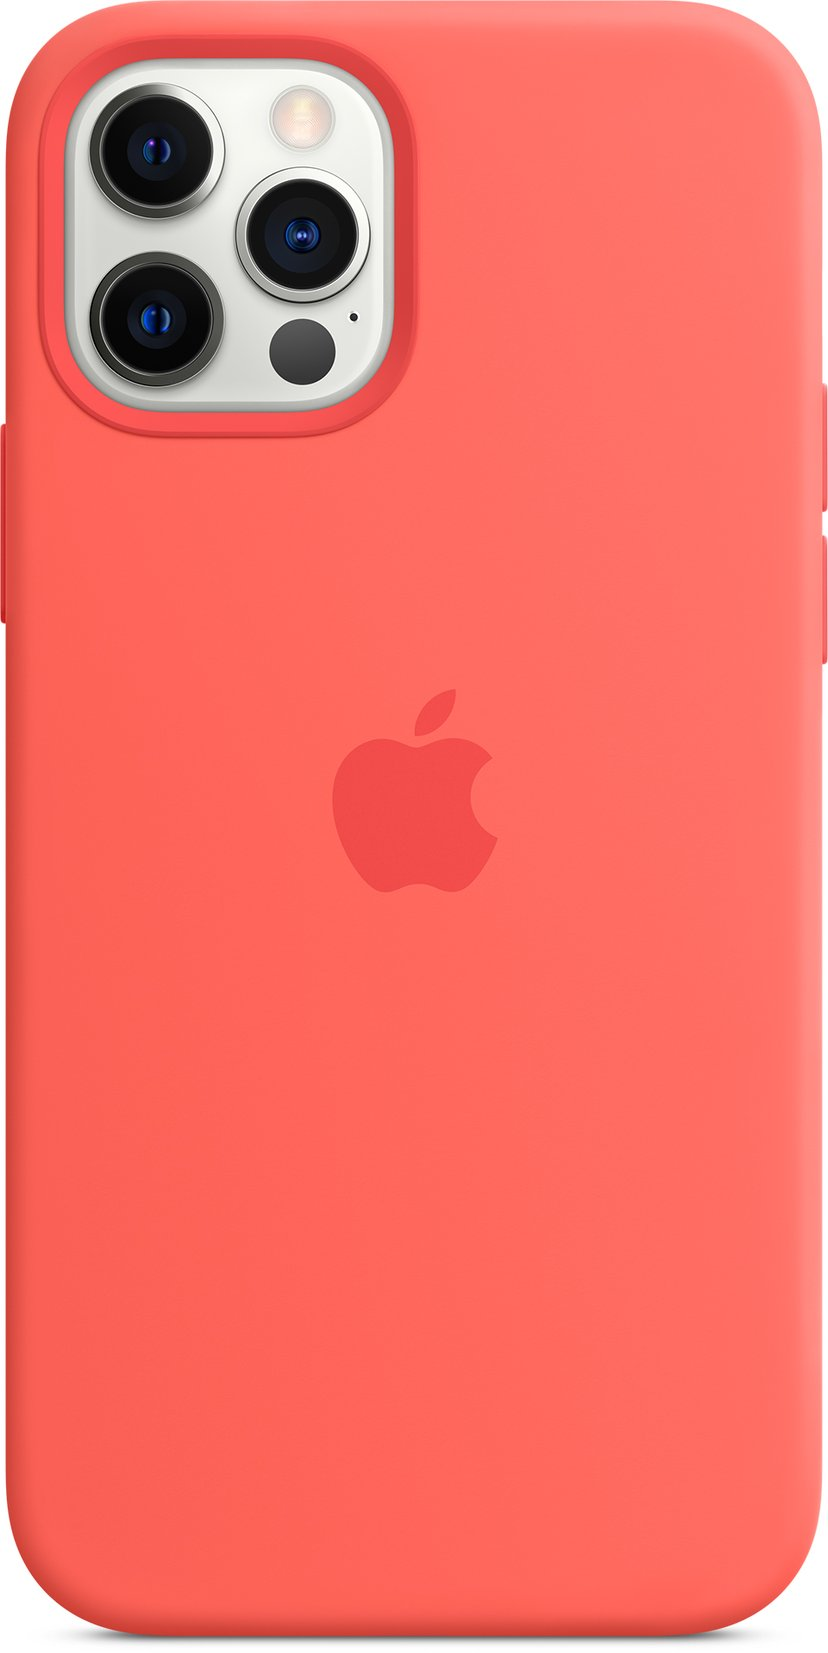 Apple Silicon Case with MagSafe iPhone 12, iPhone 12 Pro Rosa sitrus